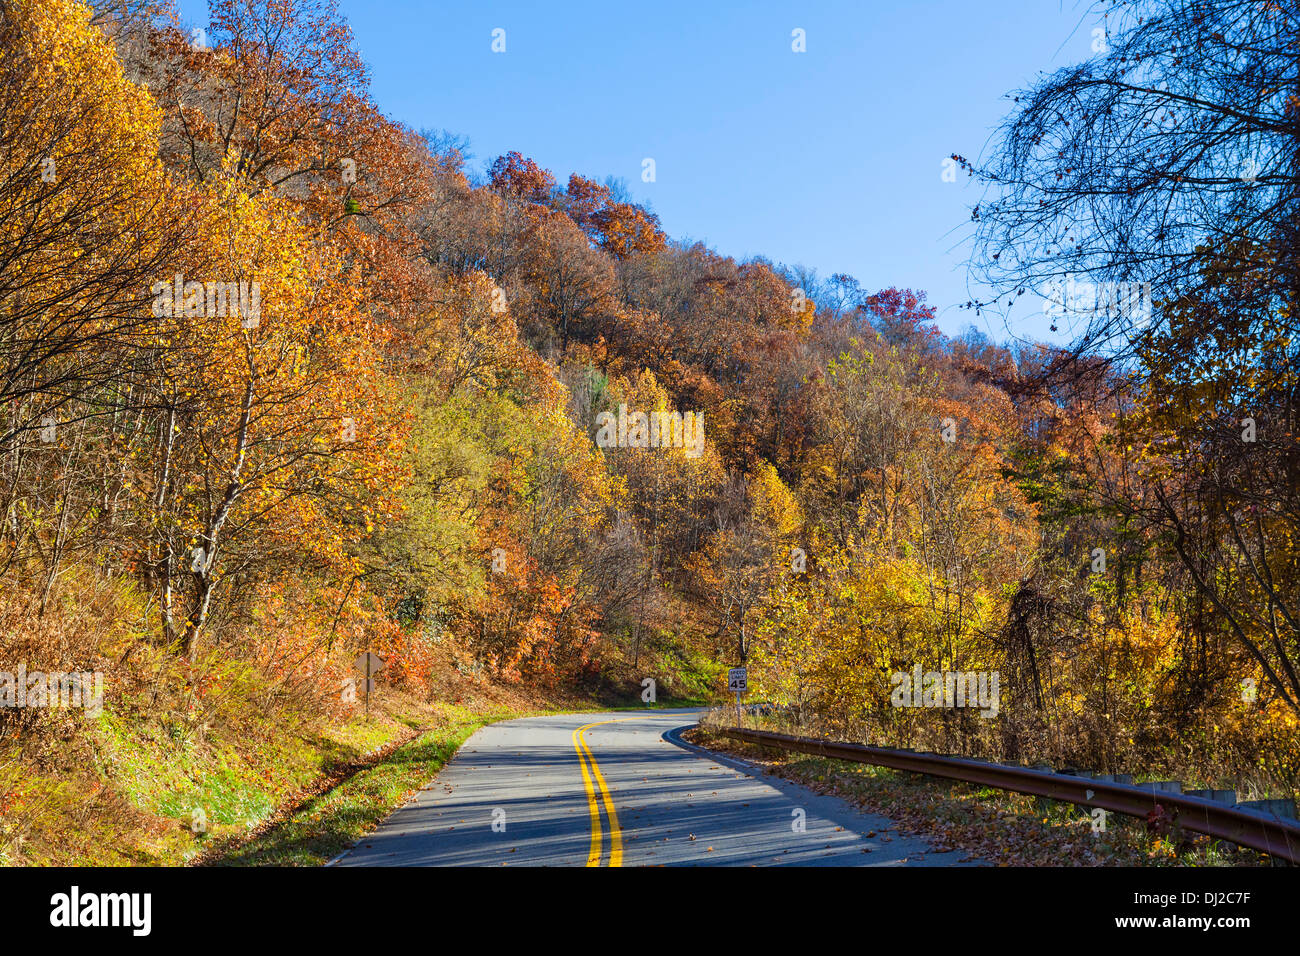 Fall colors on the Cherohala Skyway just south of the Great Smoky Mountains National Park, North Carolina, USA - Stock Image